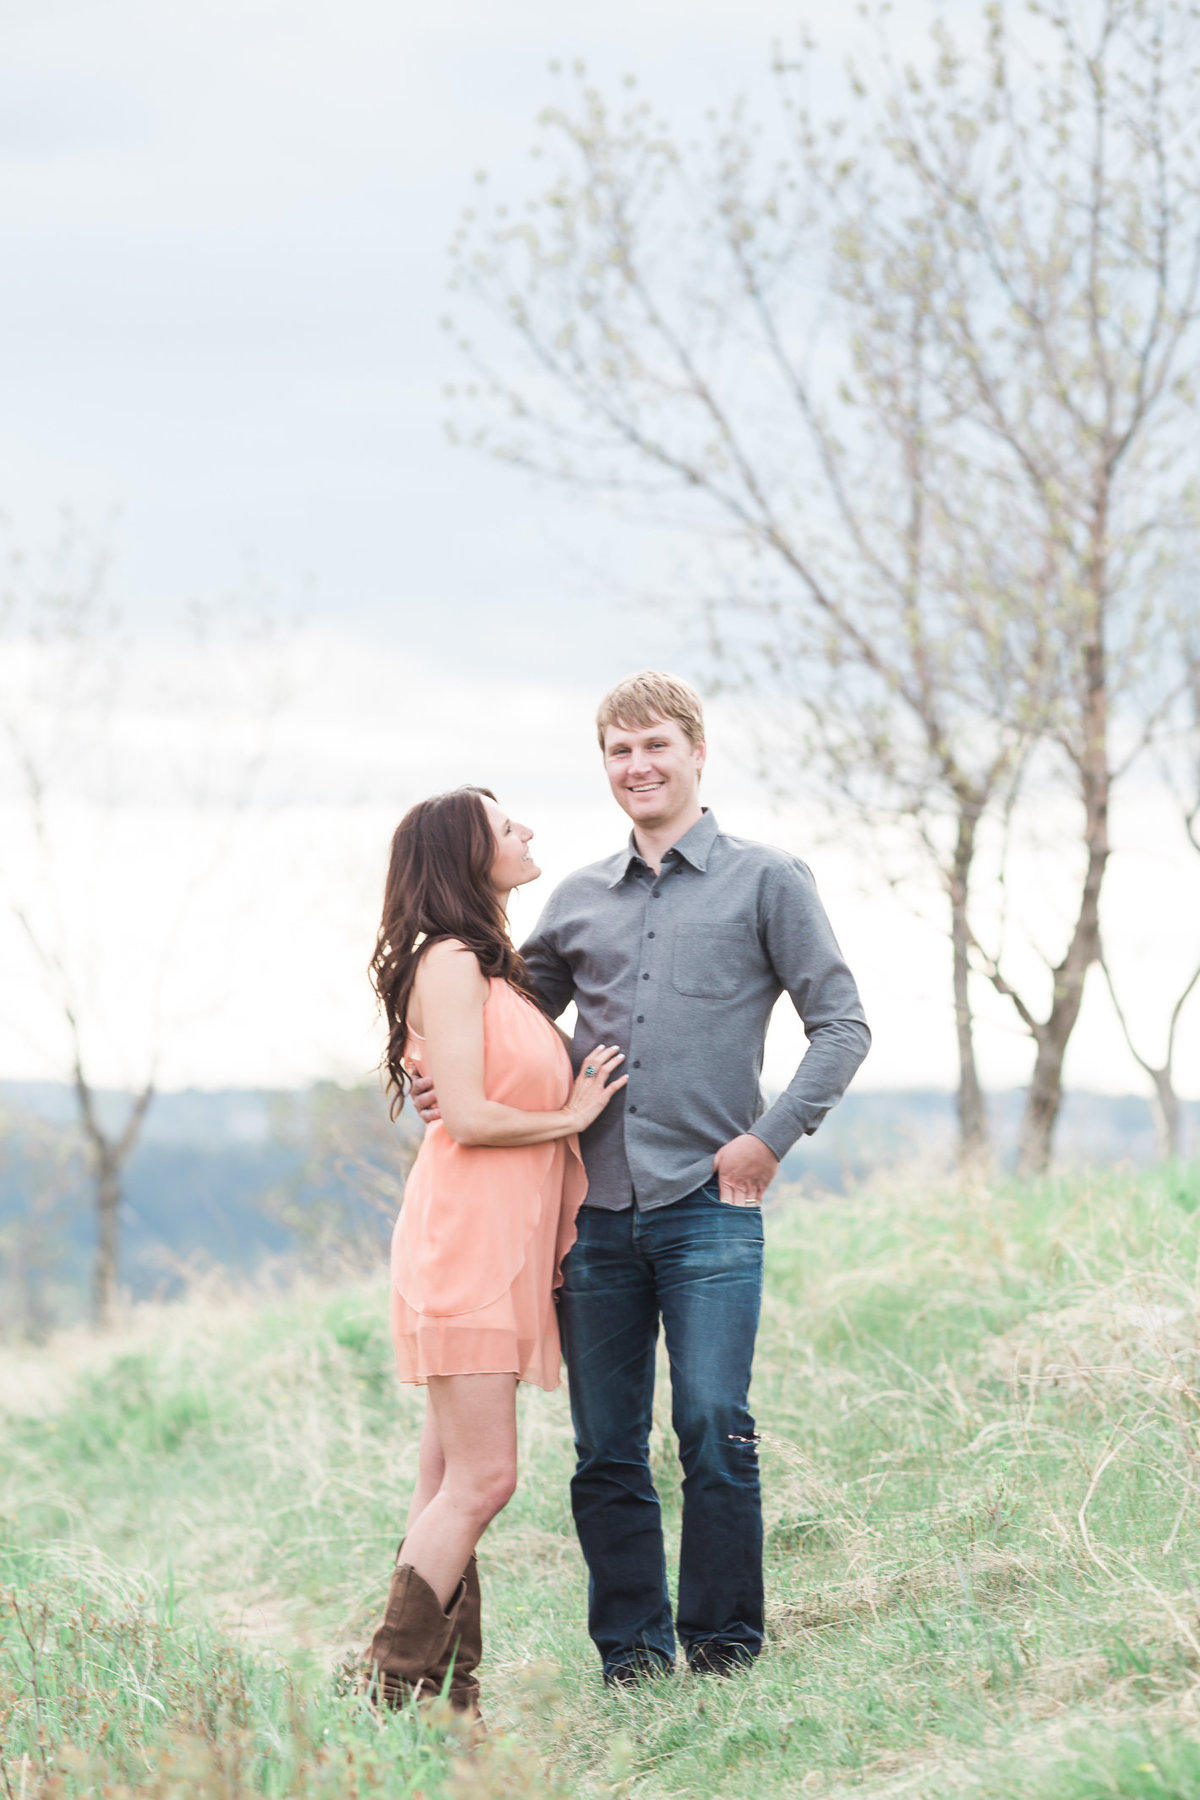 Victoria Blaire Best Kelowna Engagement Wedding Photographer Okanagan|Kootenays-11